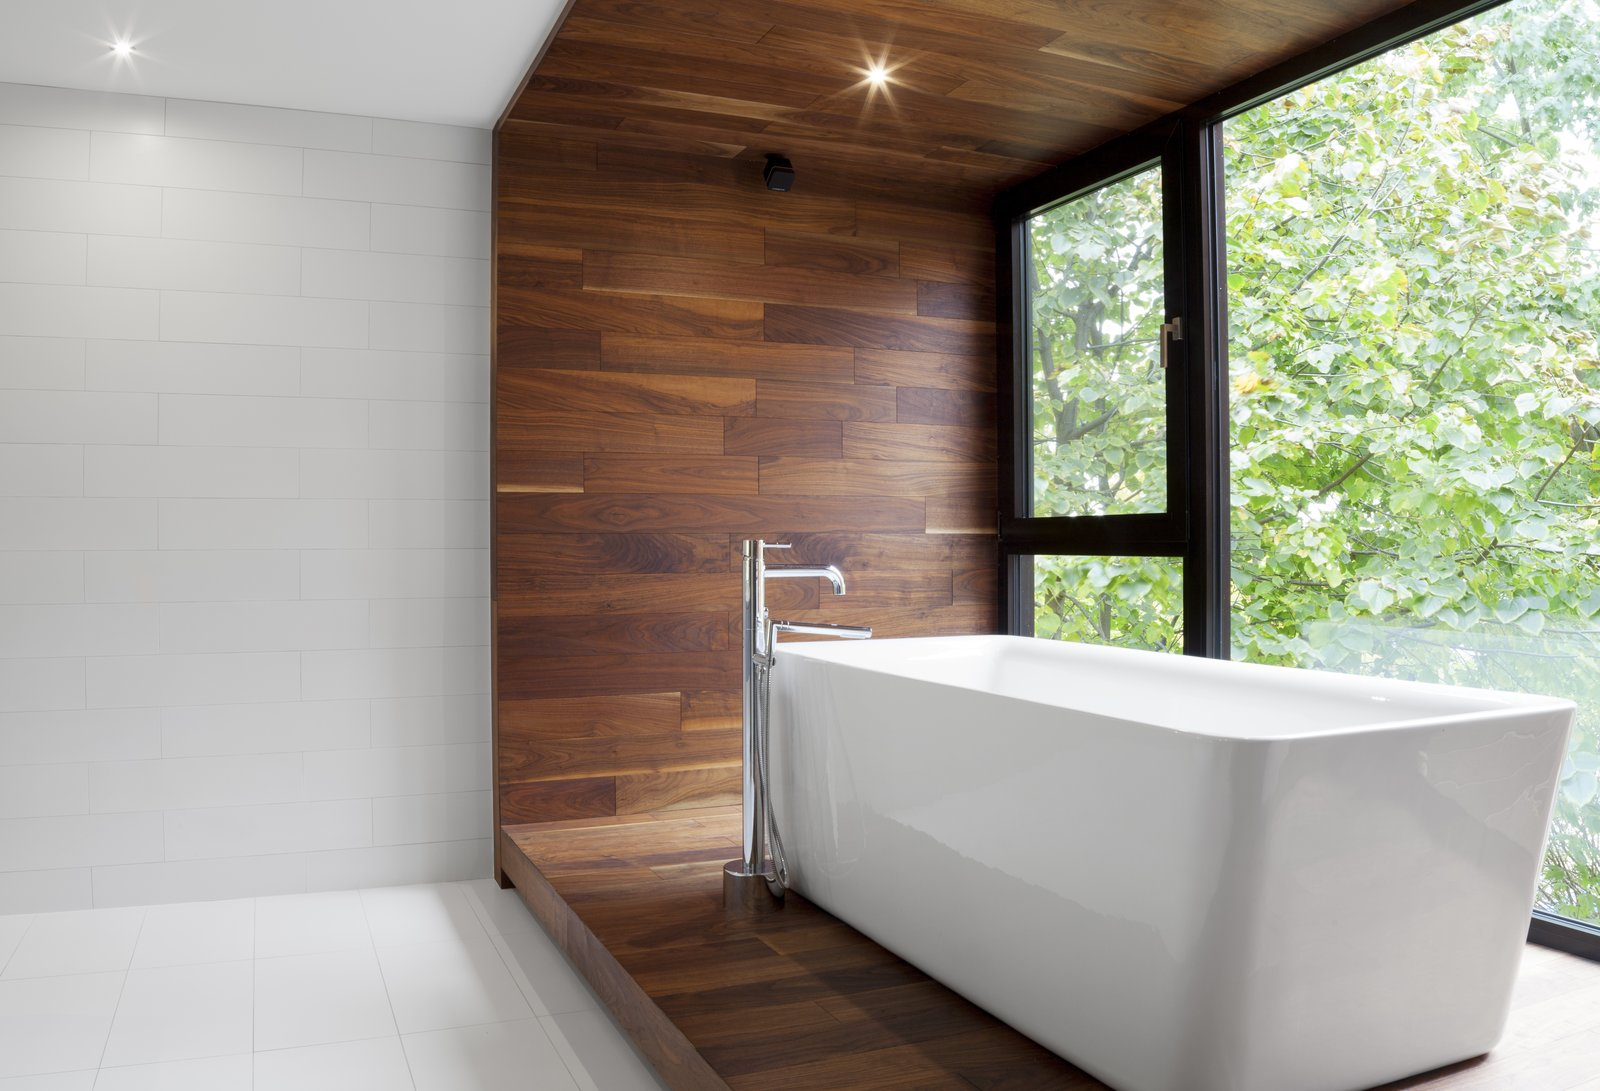 Bathroom at Rue de l'Anse residence - PARKA Architecture & Design - Quebec city, Canada Rue de l'Anse residence by PARKA - Architecture & Design